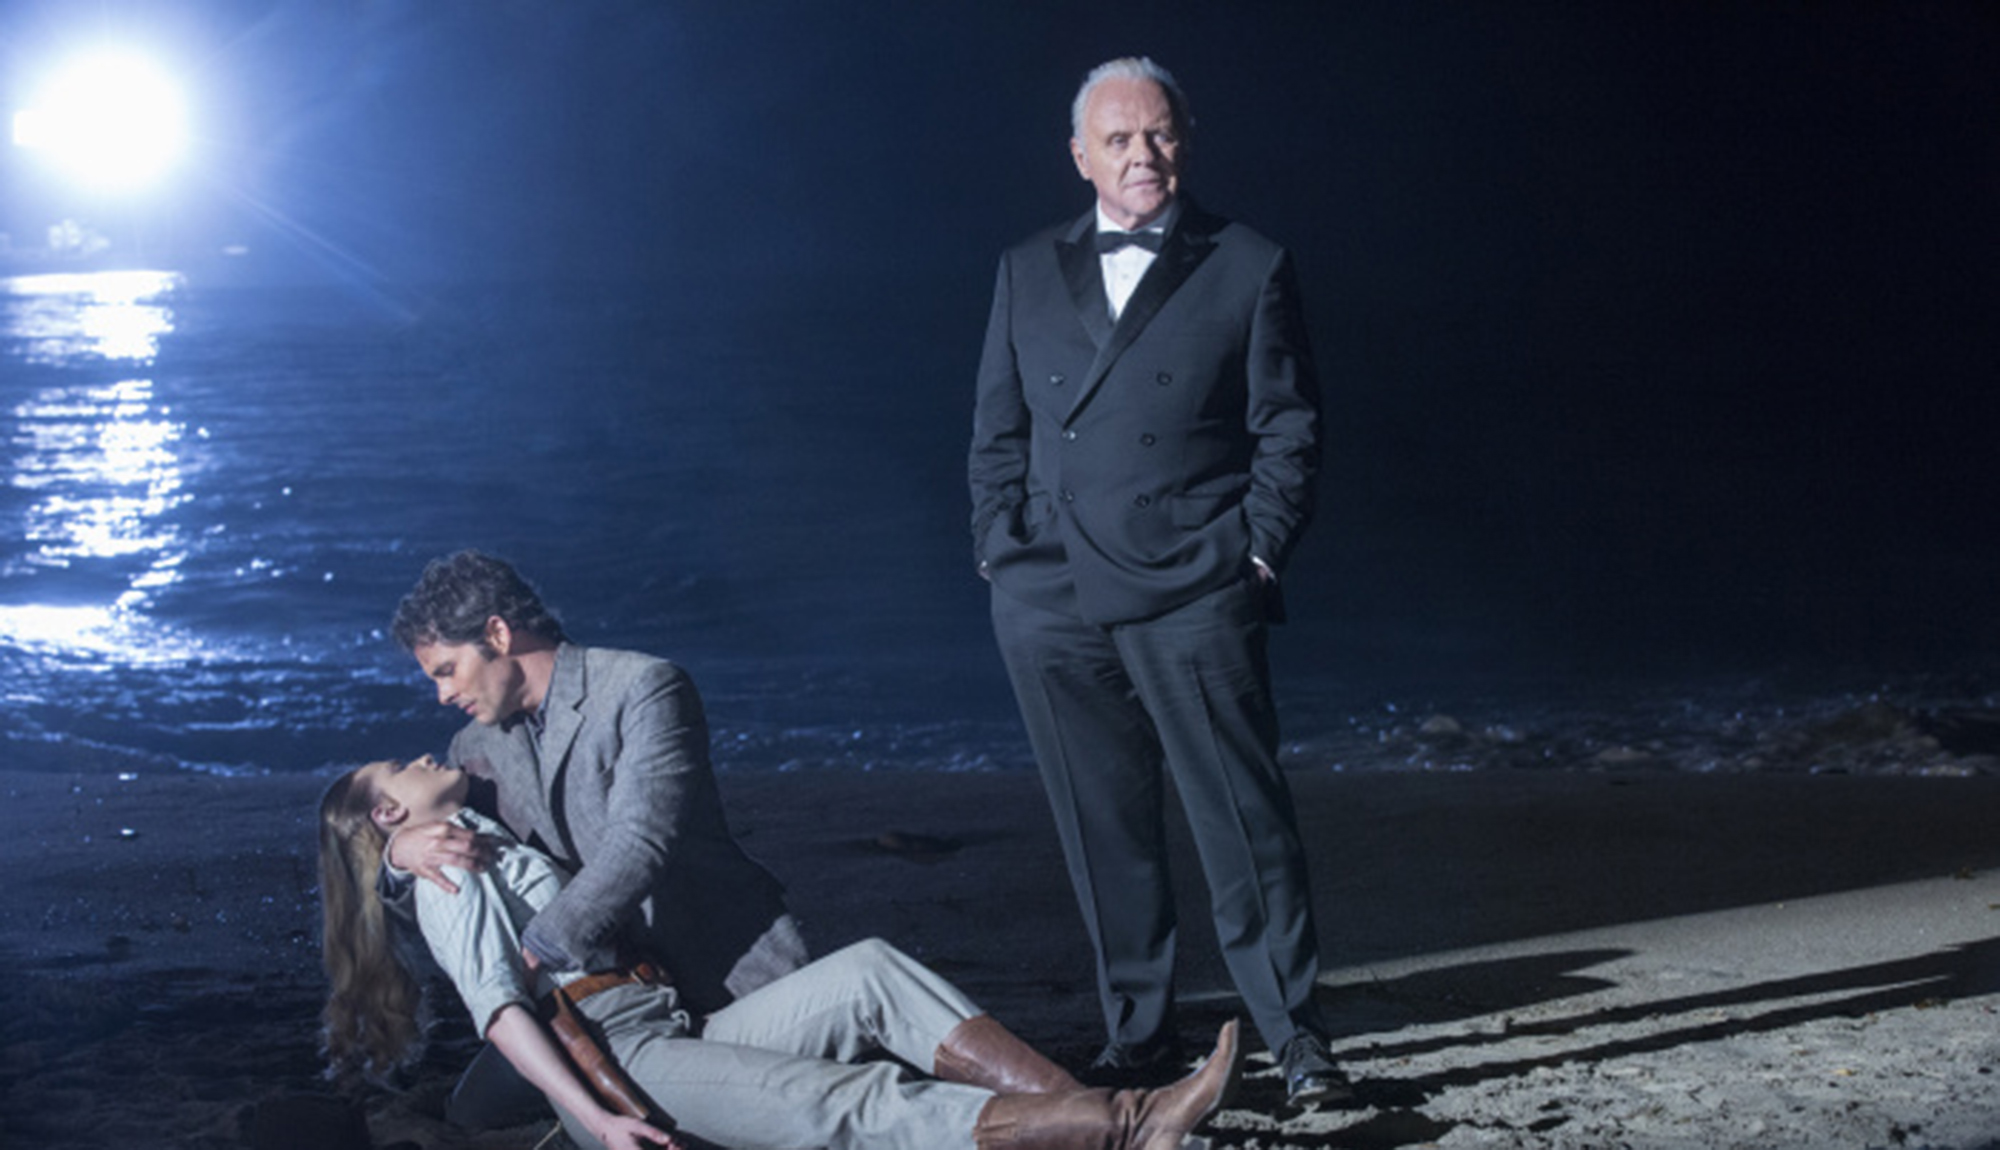 Westworld – Dove tutto è concesso 1×10 – The Bicameral Mind – Finale di stagione